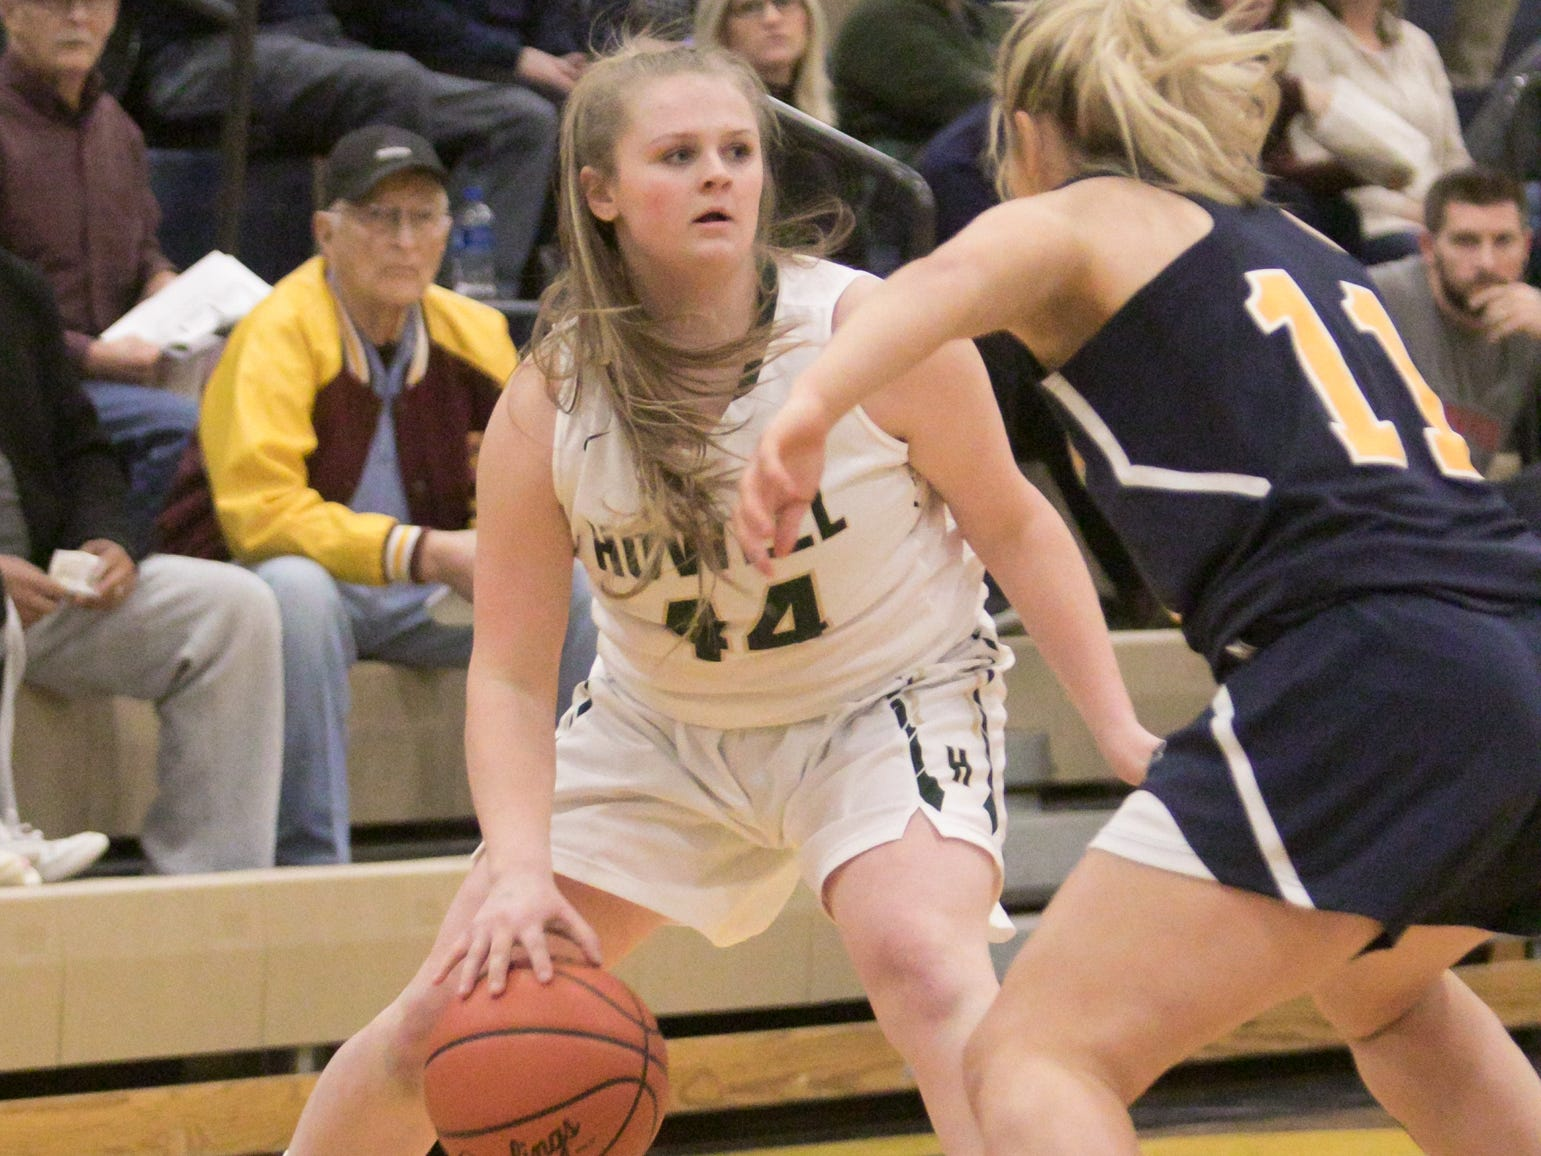 Avery Parrott of Howell looks for an open Highlander in the district championship game Friday, March 8, 2019.